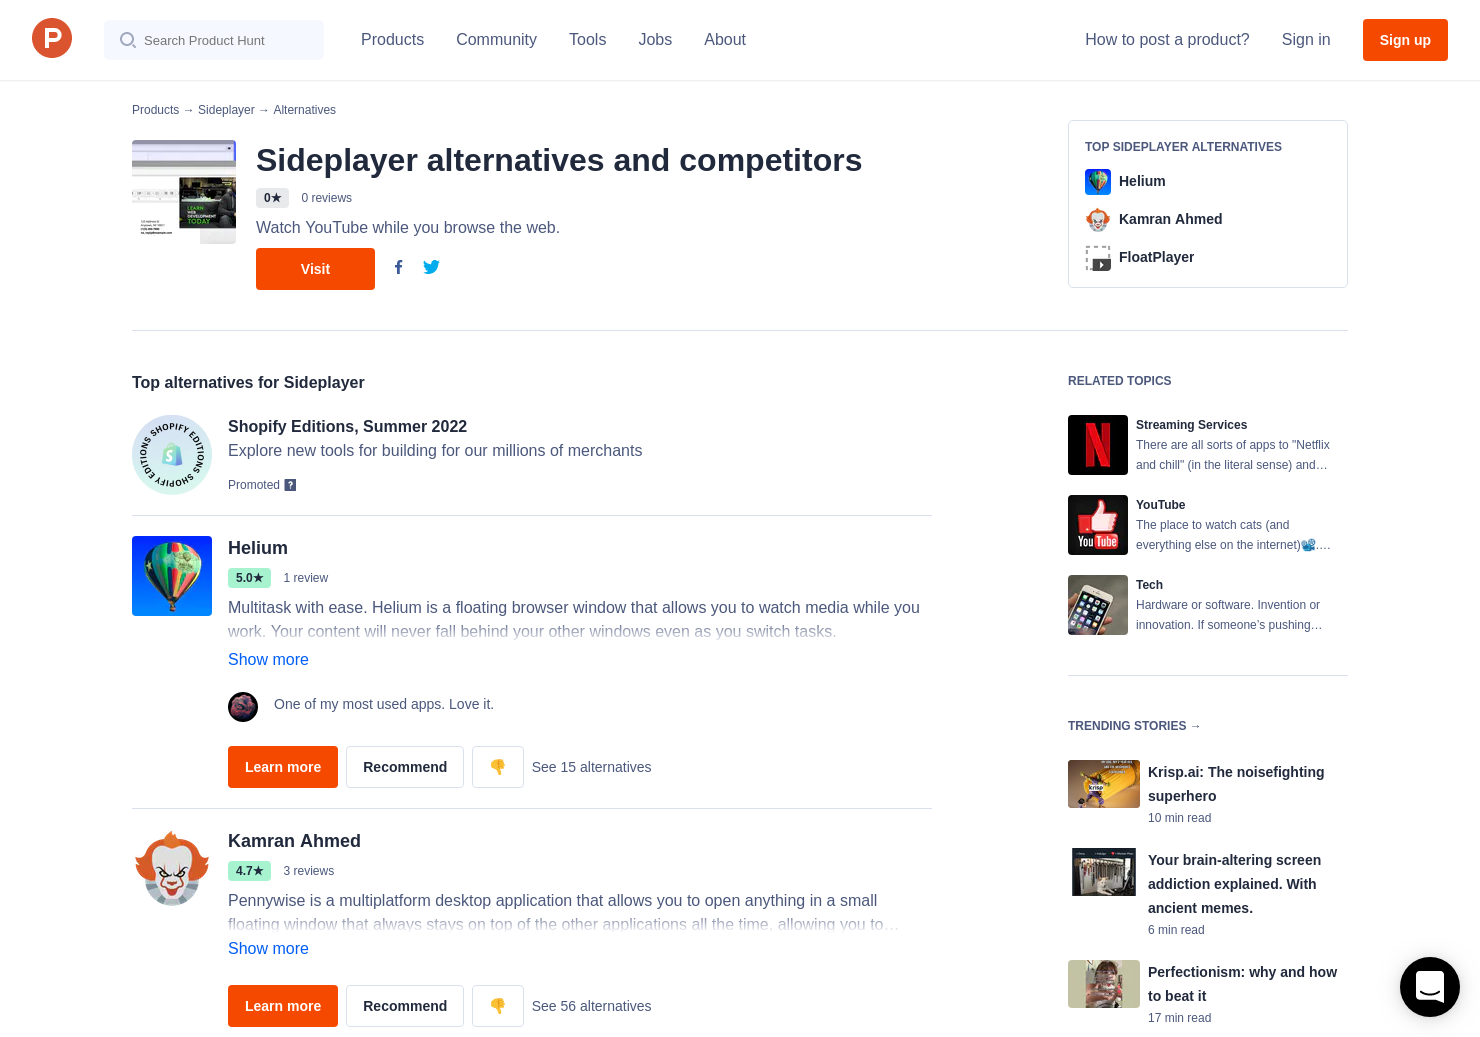 7 Alternatives to Sideplayer | Product Hunt